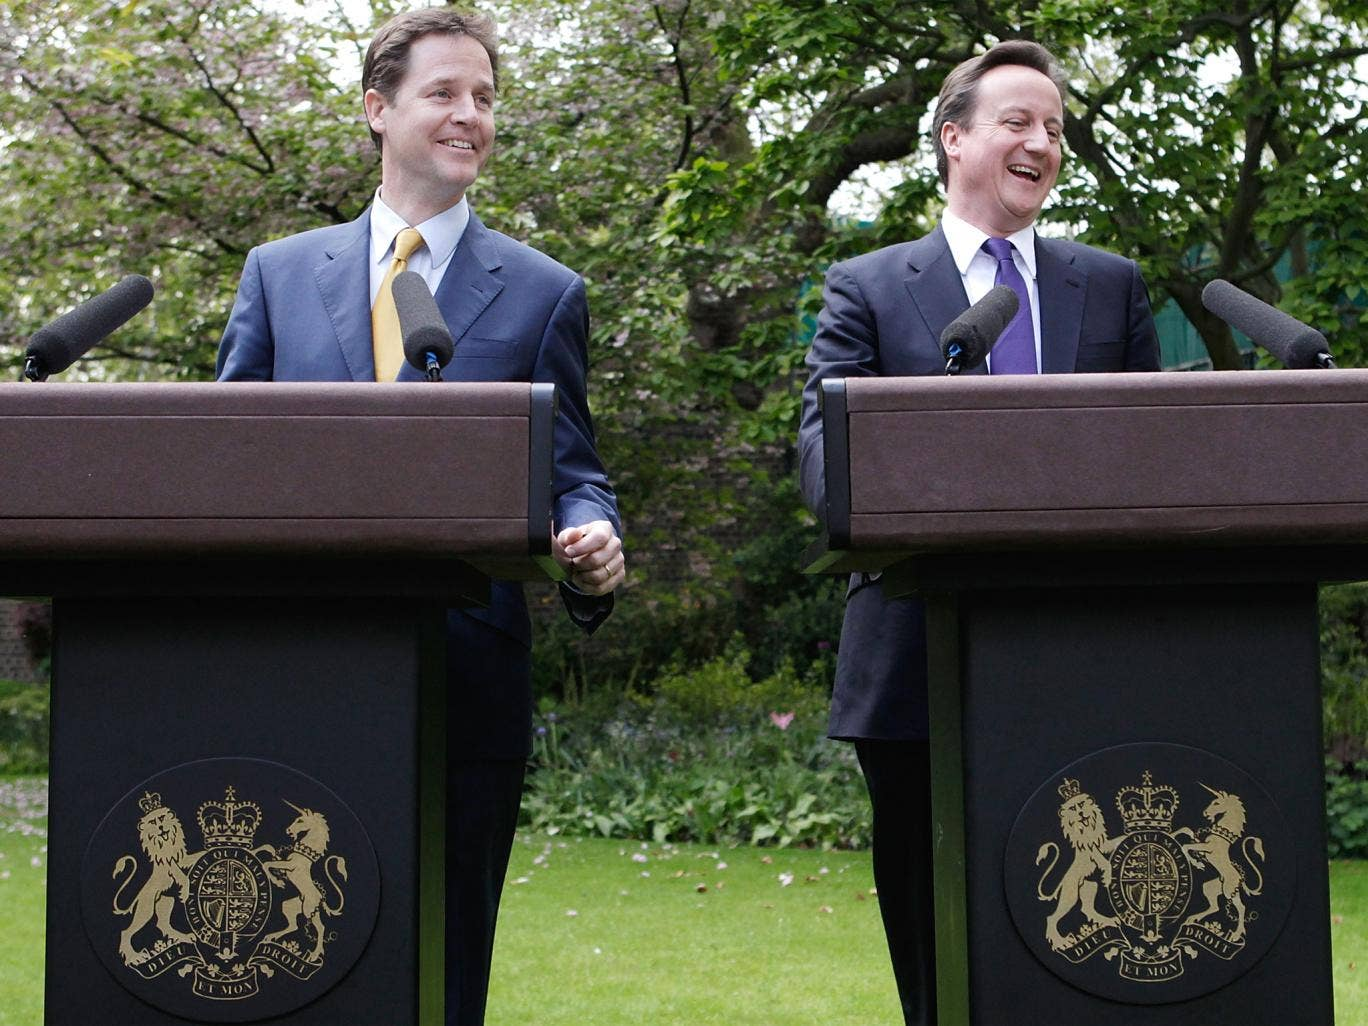 Nick Clegg and David Cameron: Their ties showed party colours, but the PM and his deputy otherwise matched outfits in the heady days of the Coalition honeymoon. They wore navy suits during their garden press conference in 2010, but have taken more individ